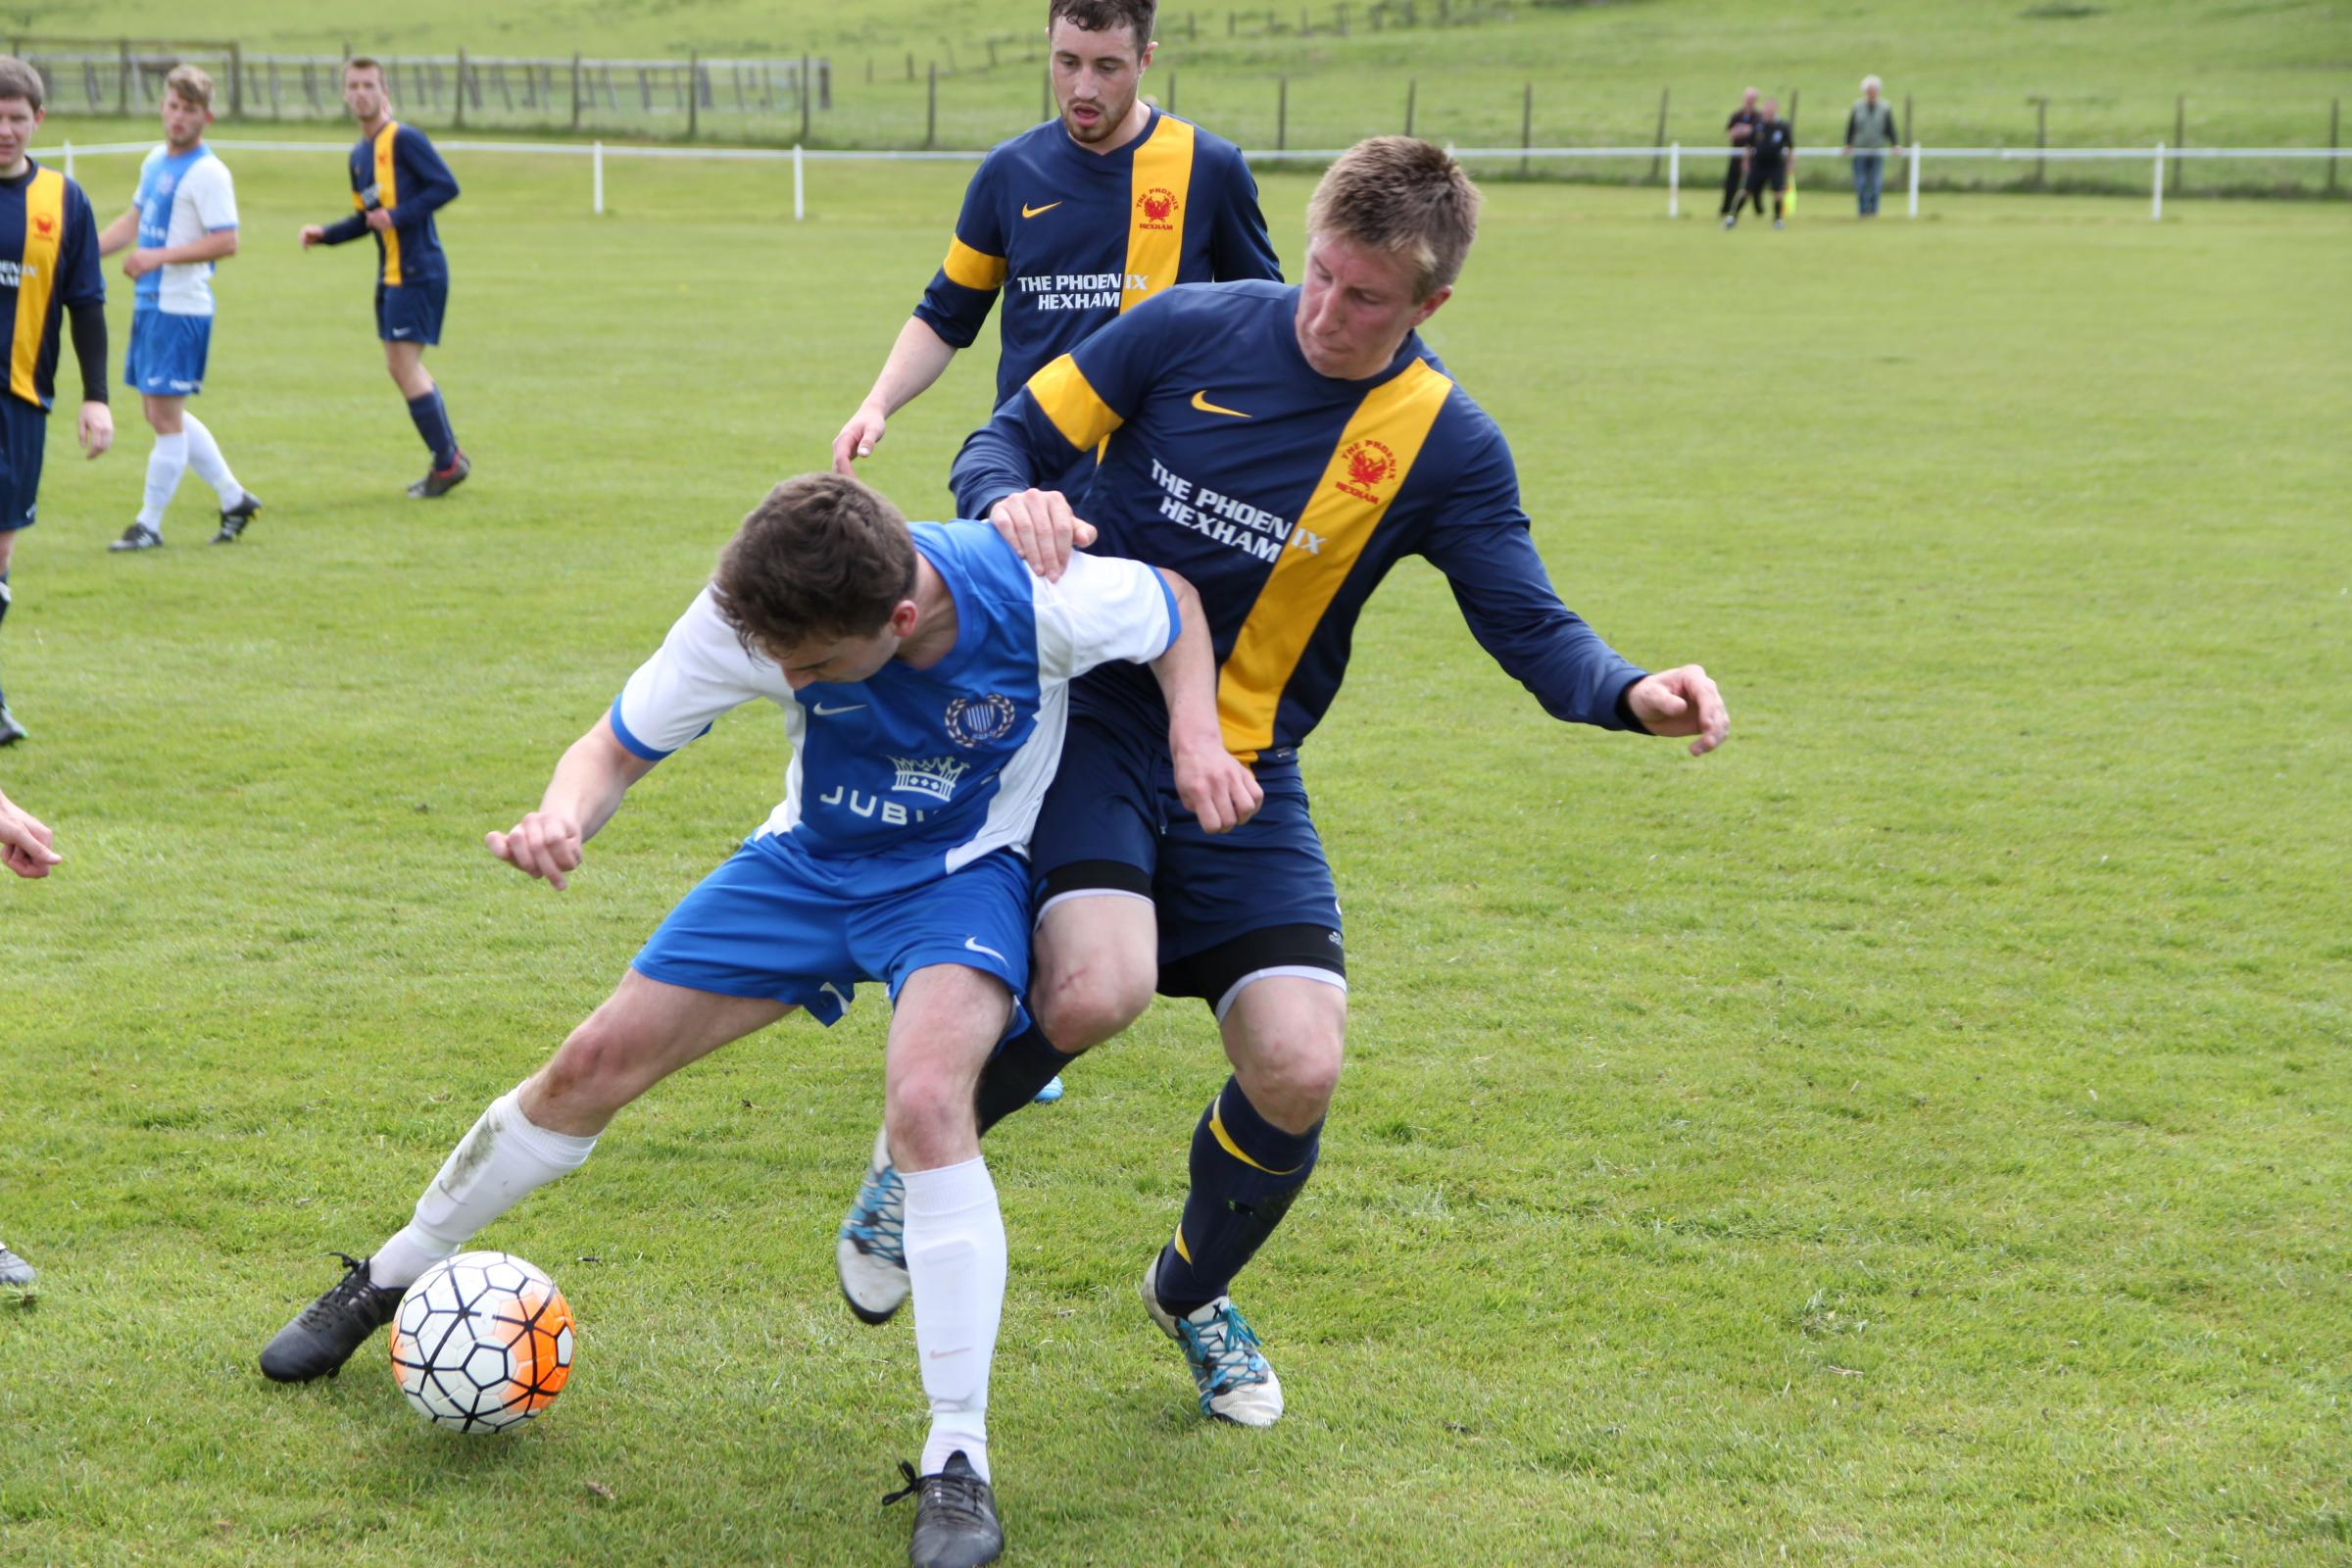 James Charteries (left) was among the goalscorers as Haltwhistle Jubilee  progressed to the quarter finals of the Northumberland Minor Cup.